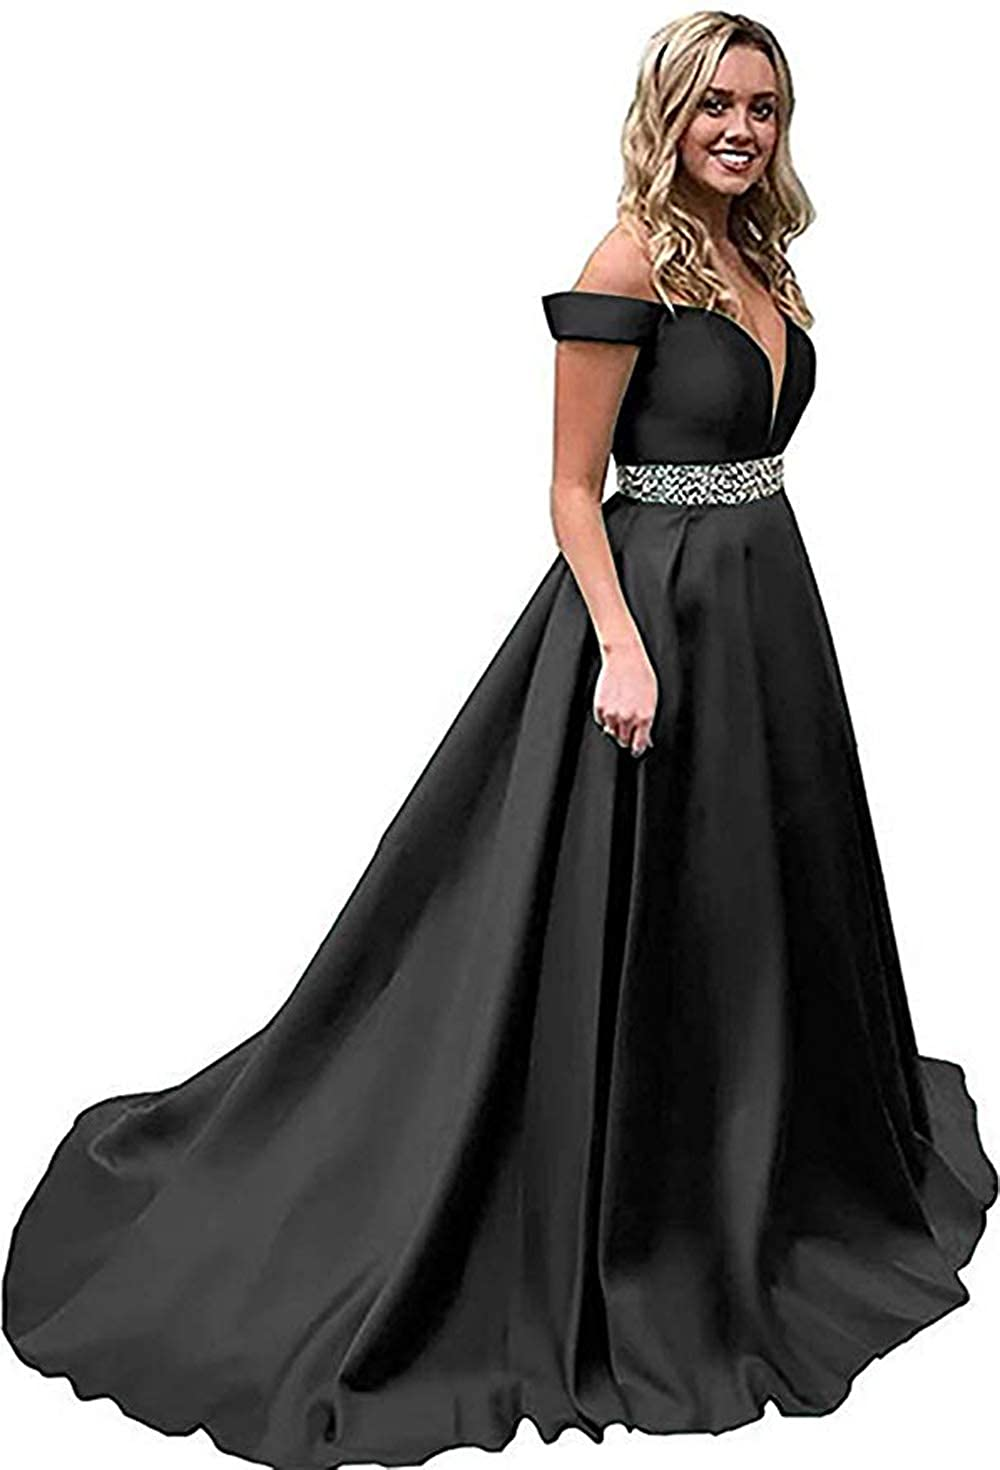 Black Rmaytiked Womens Off The Shoulder Prom Dresses Long Beaded 2019 Satin A Line Formal Evening Ball Gowns with Pockets